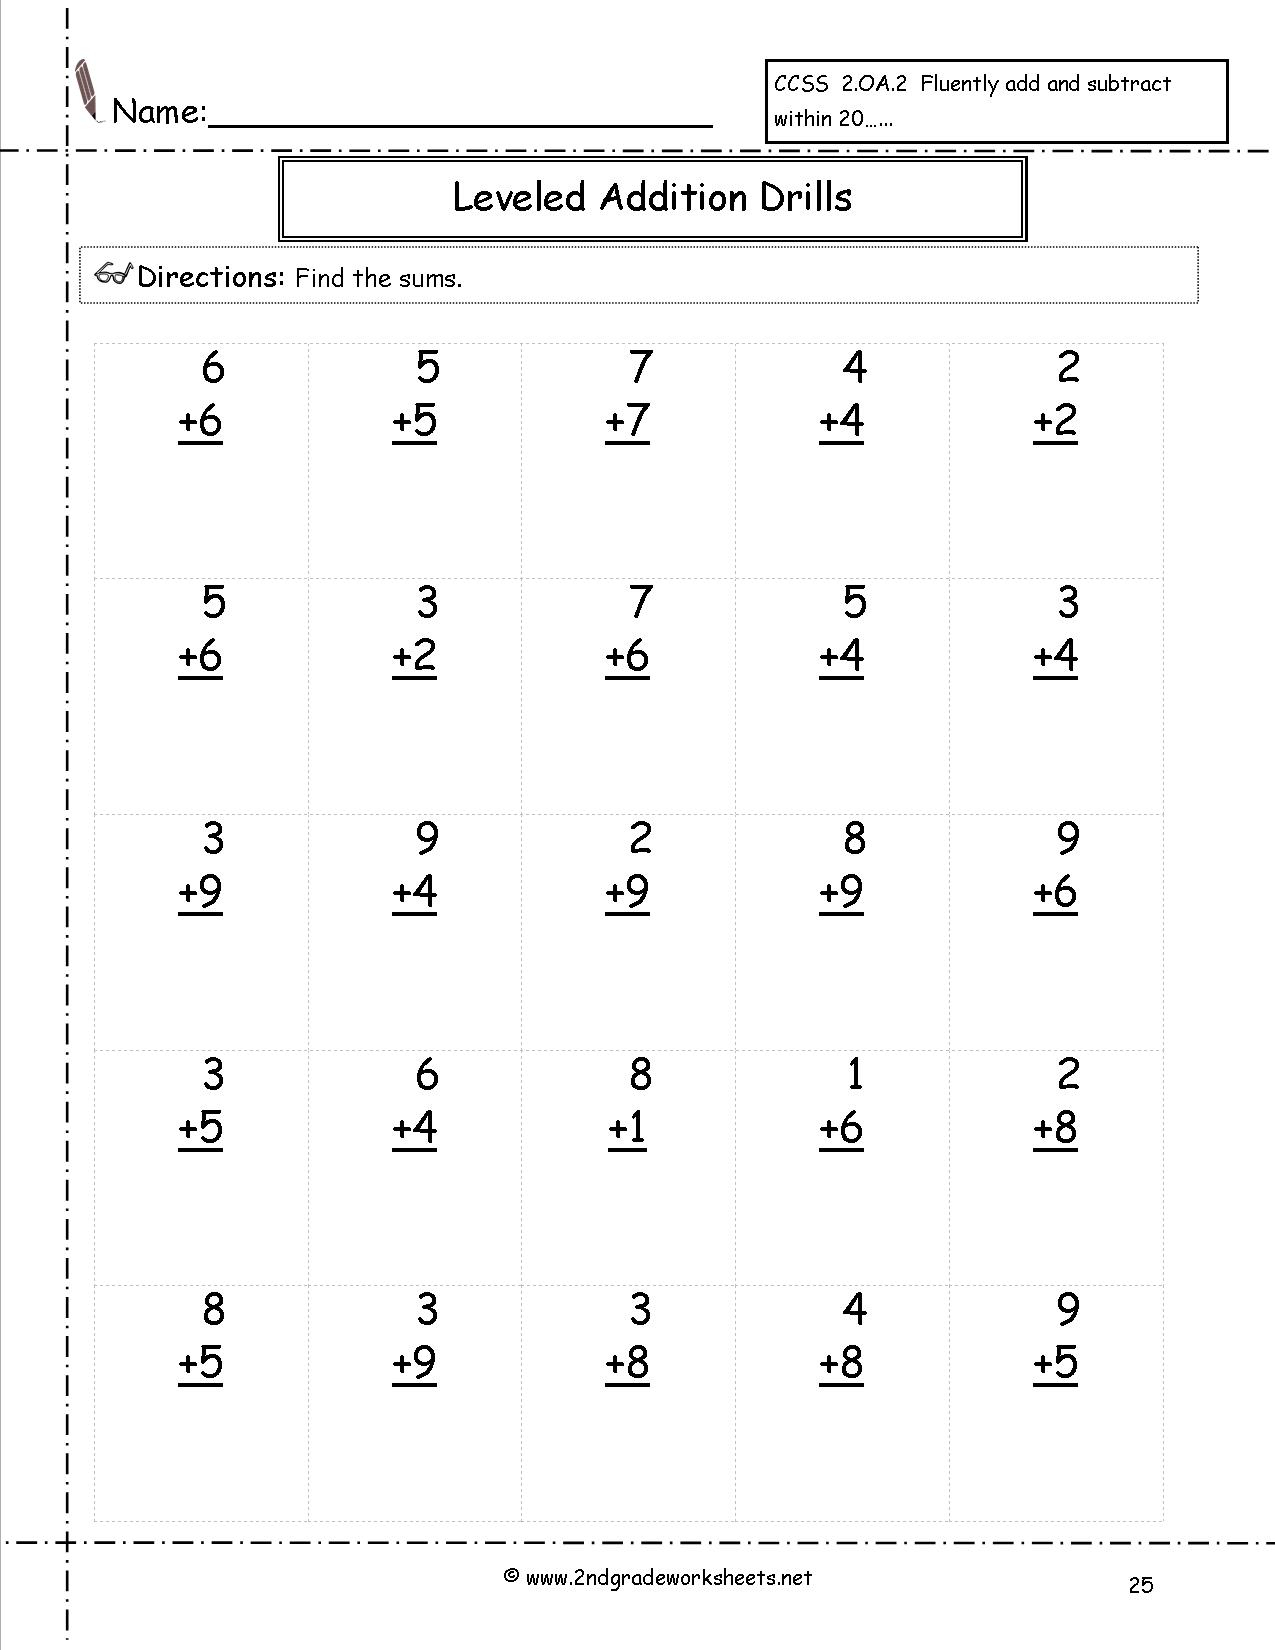 Free Math Worksheets And Printouts | Free Printable Worksheets For Math 2Nd Grade